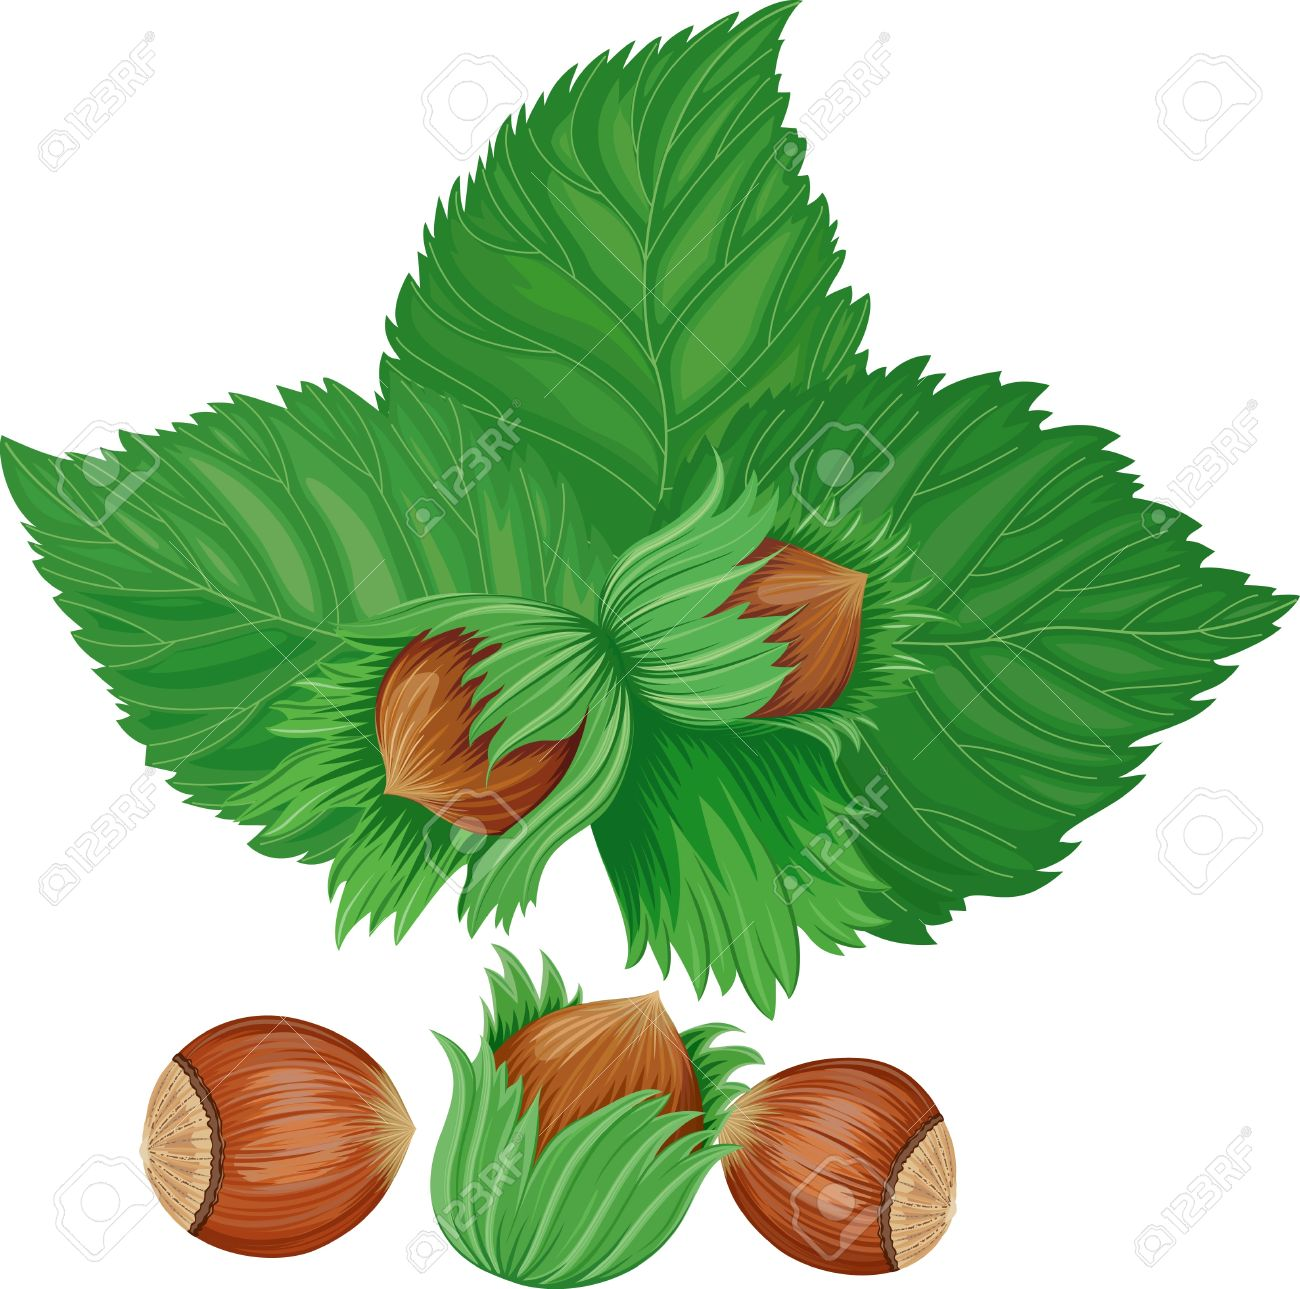 Hazelnuts Isolated Over White Background Royalty Free Cliparts.